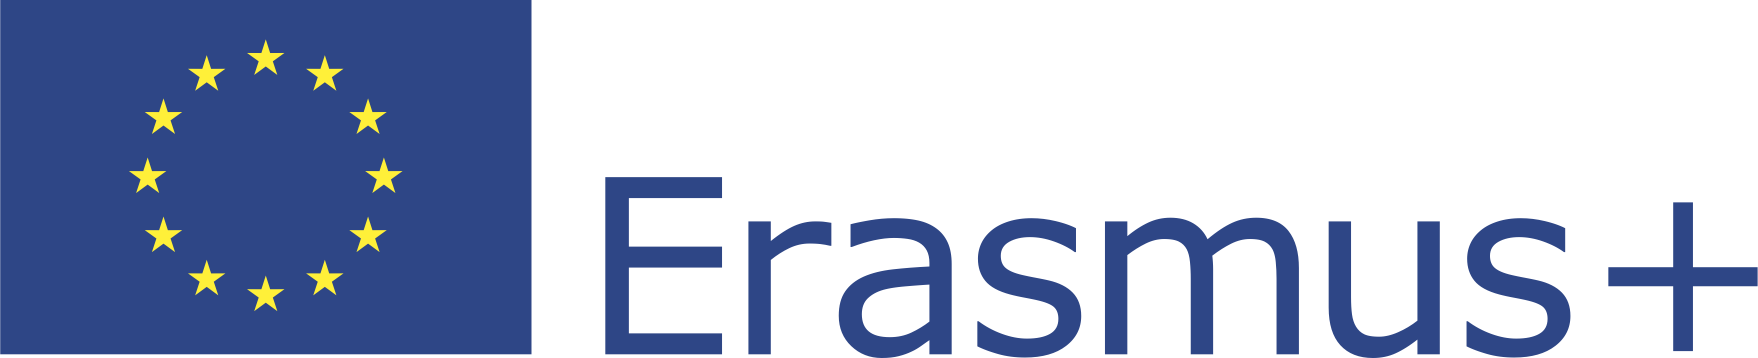 Copy of erasmus_logo-2